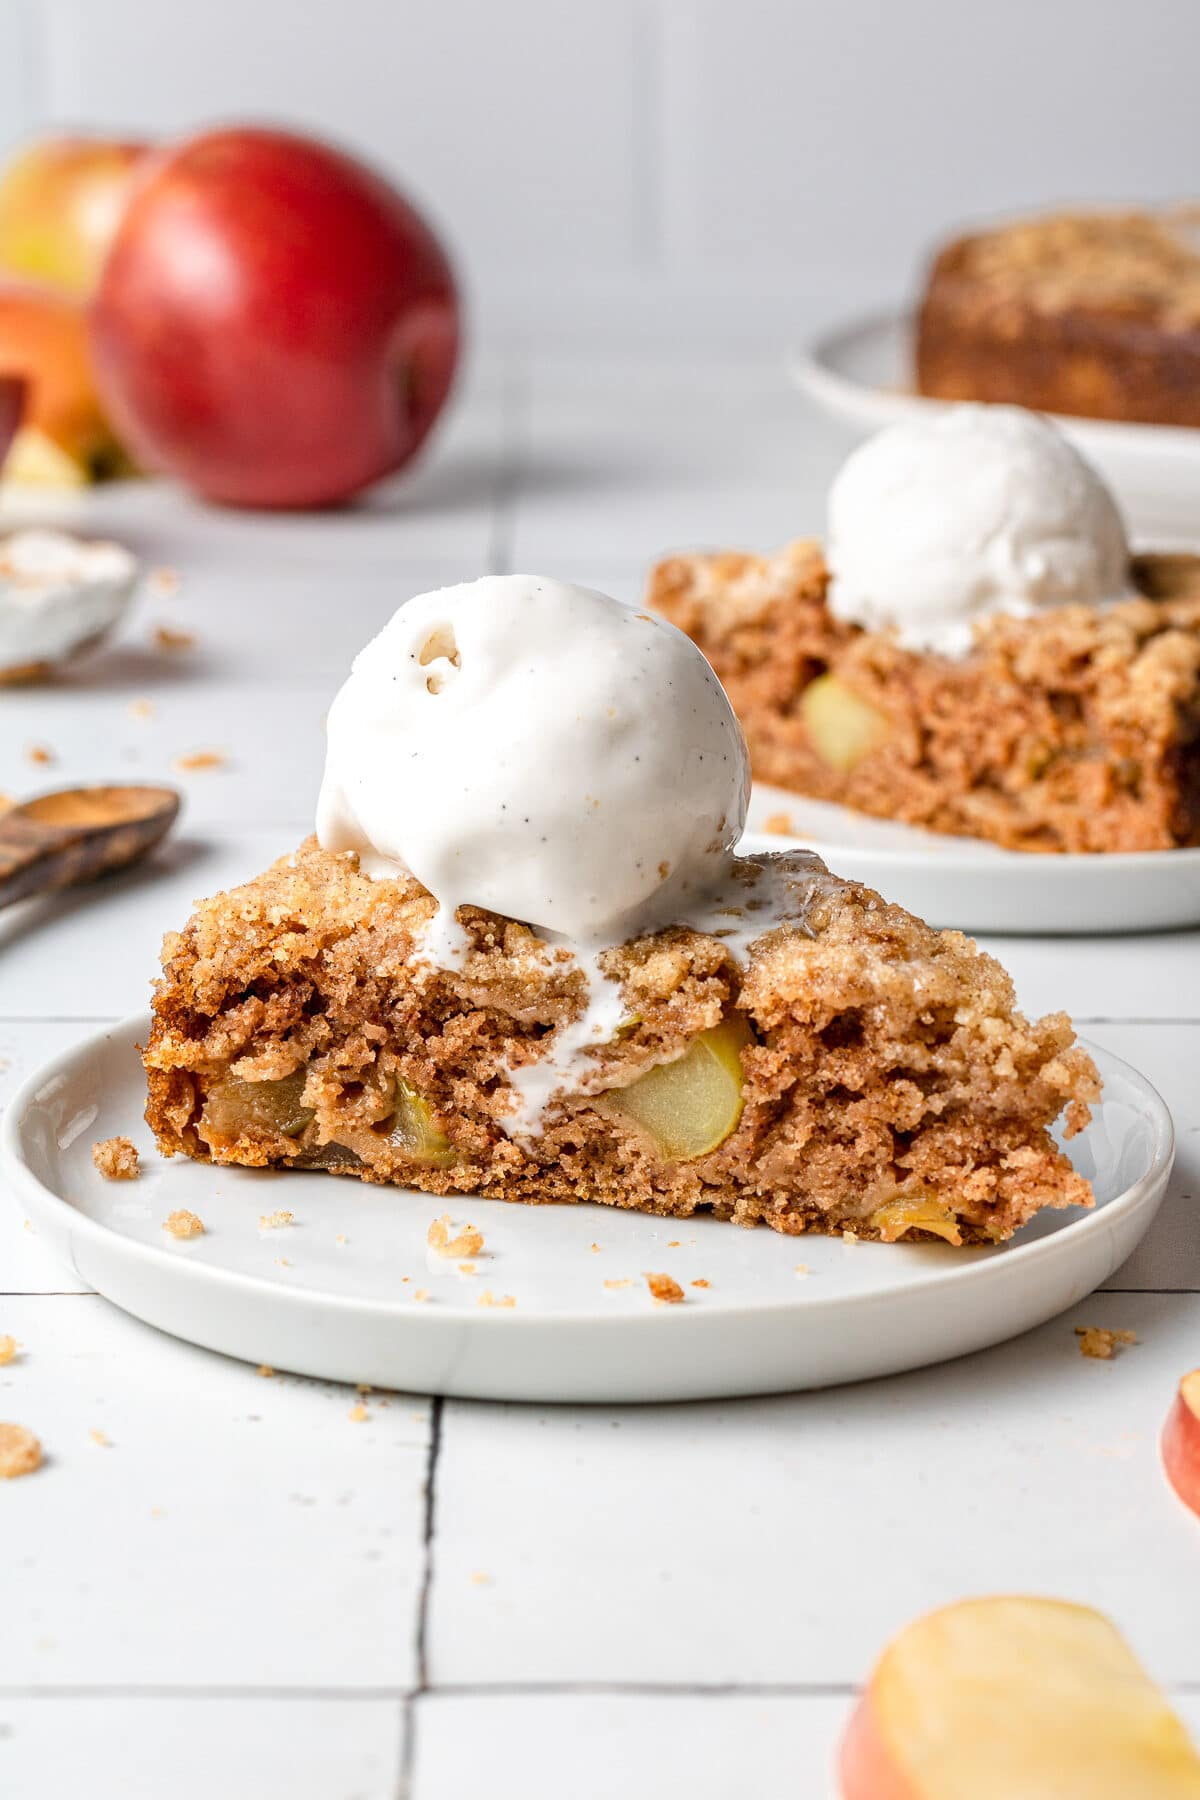 a slice of vegan apple cake on a plate with apples in the background an another slice of cake beside it